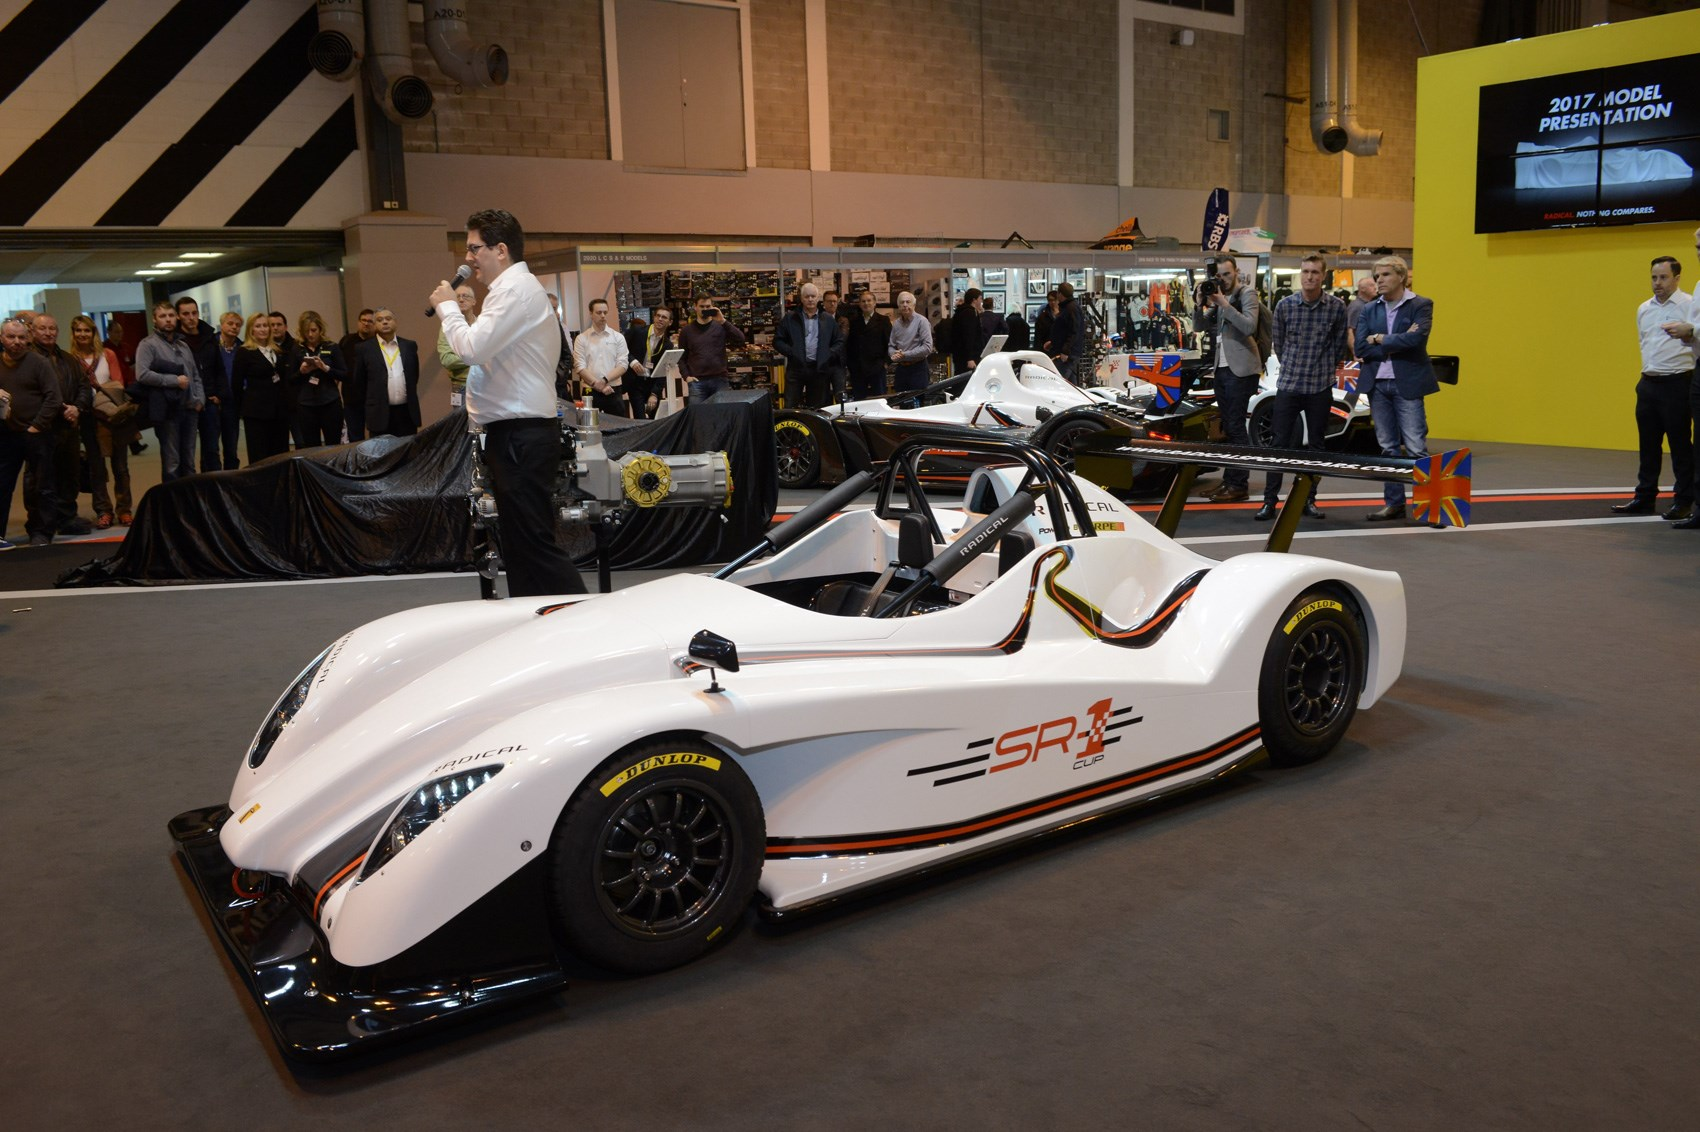 New Radical Sr1 And Sr8 Unveiled For 2017 With A Little